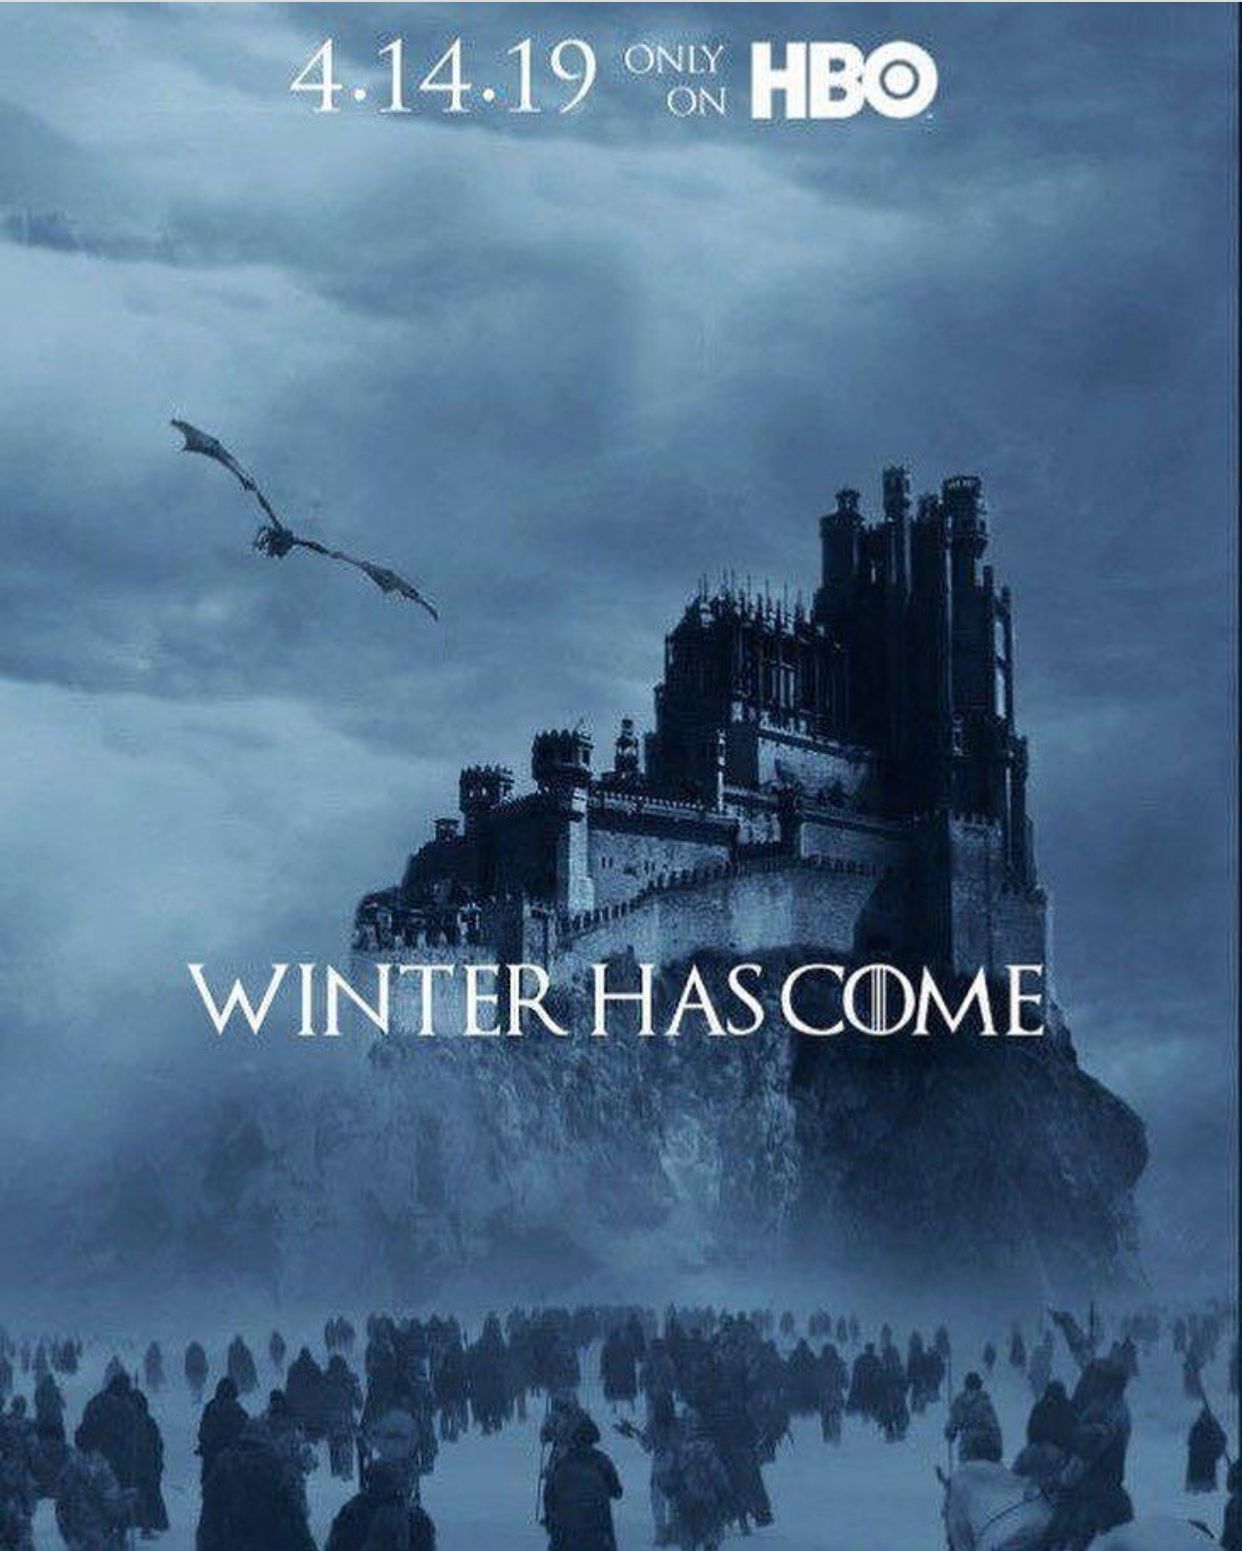 Save the date! Game of thrones fans, Winter is here